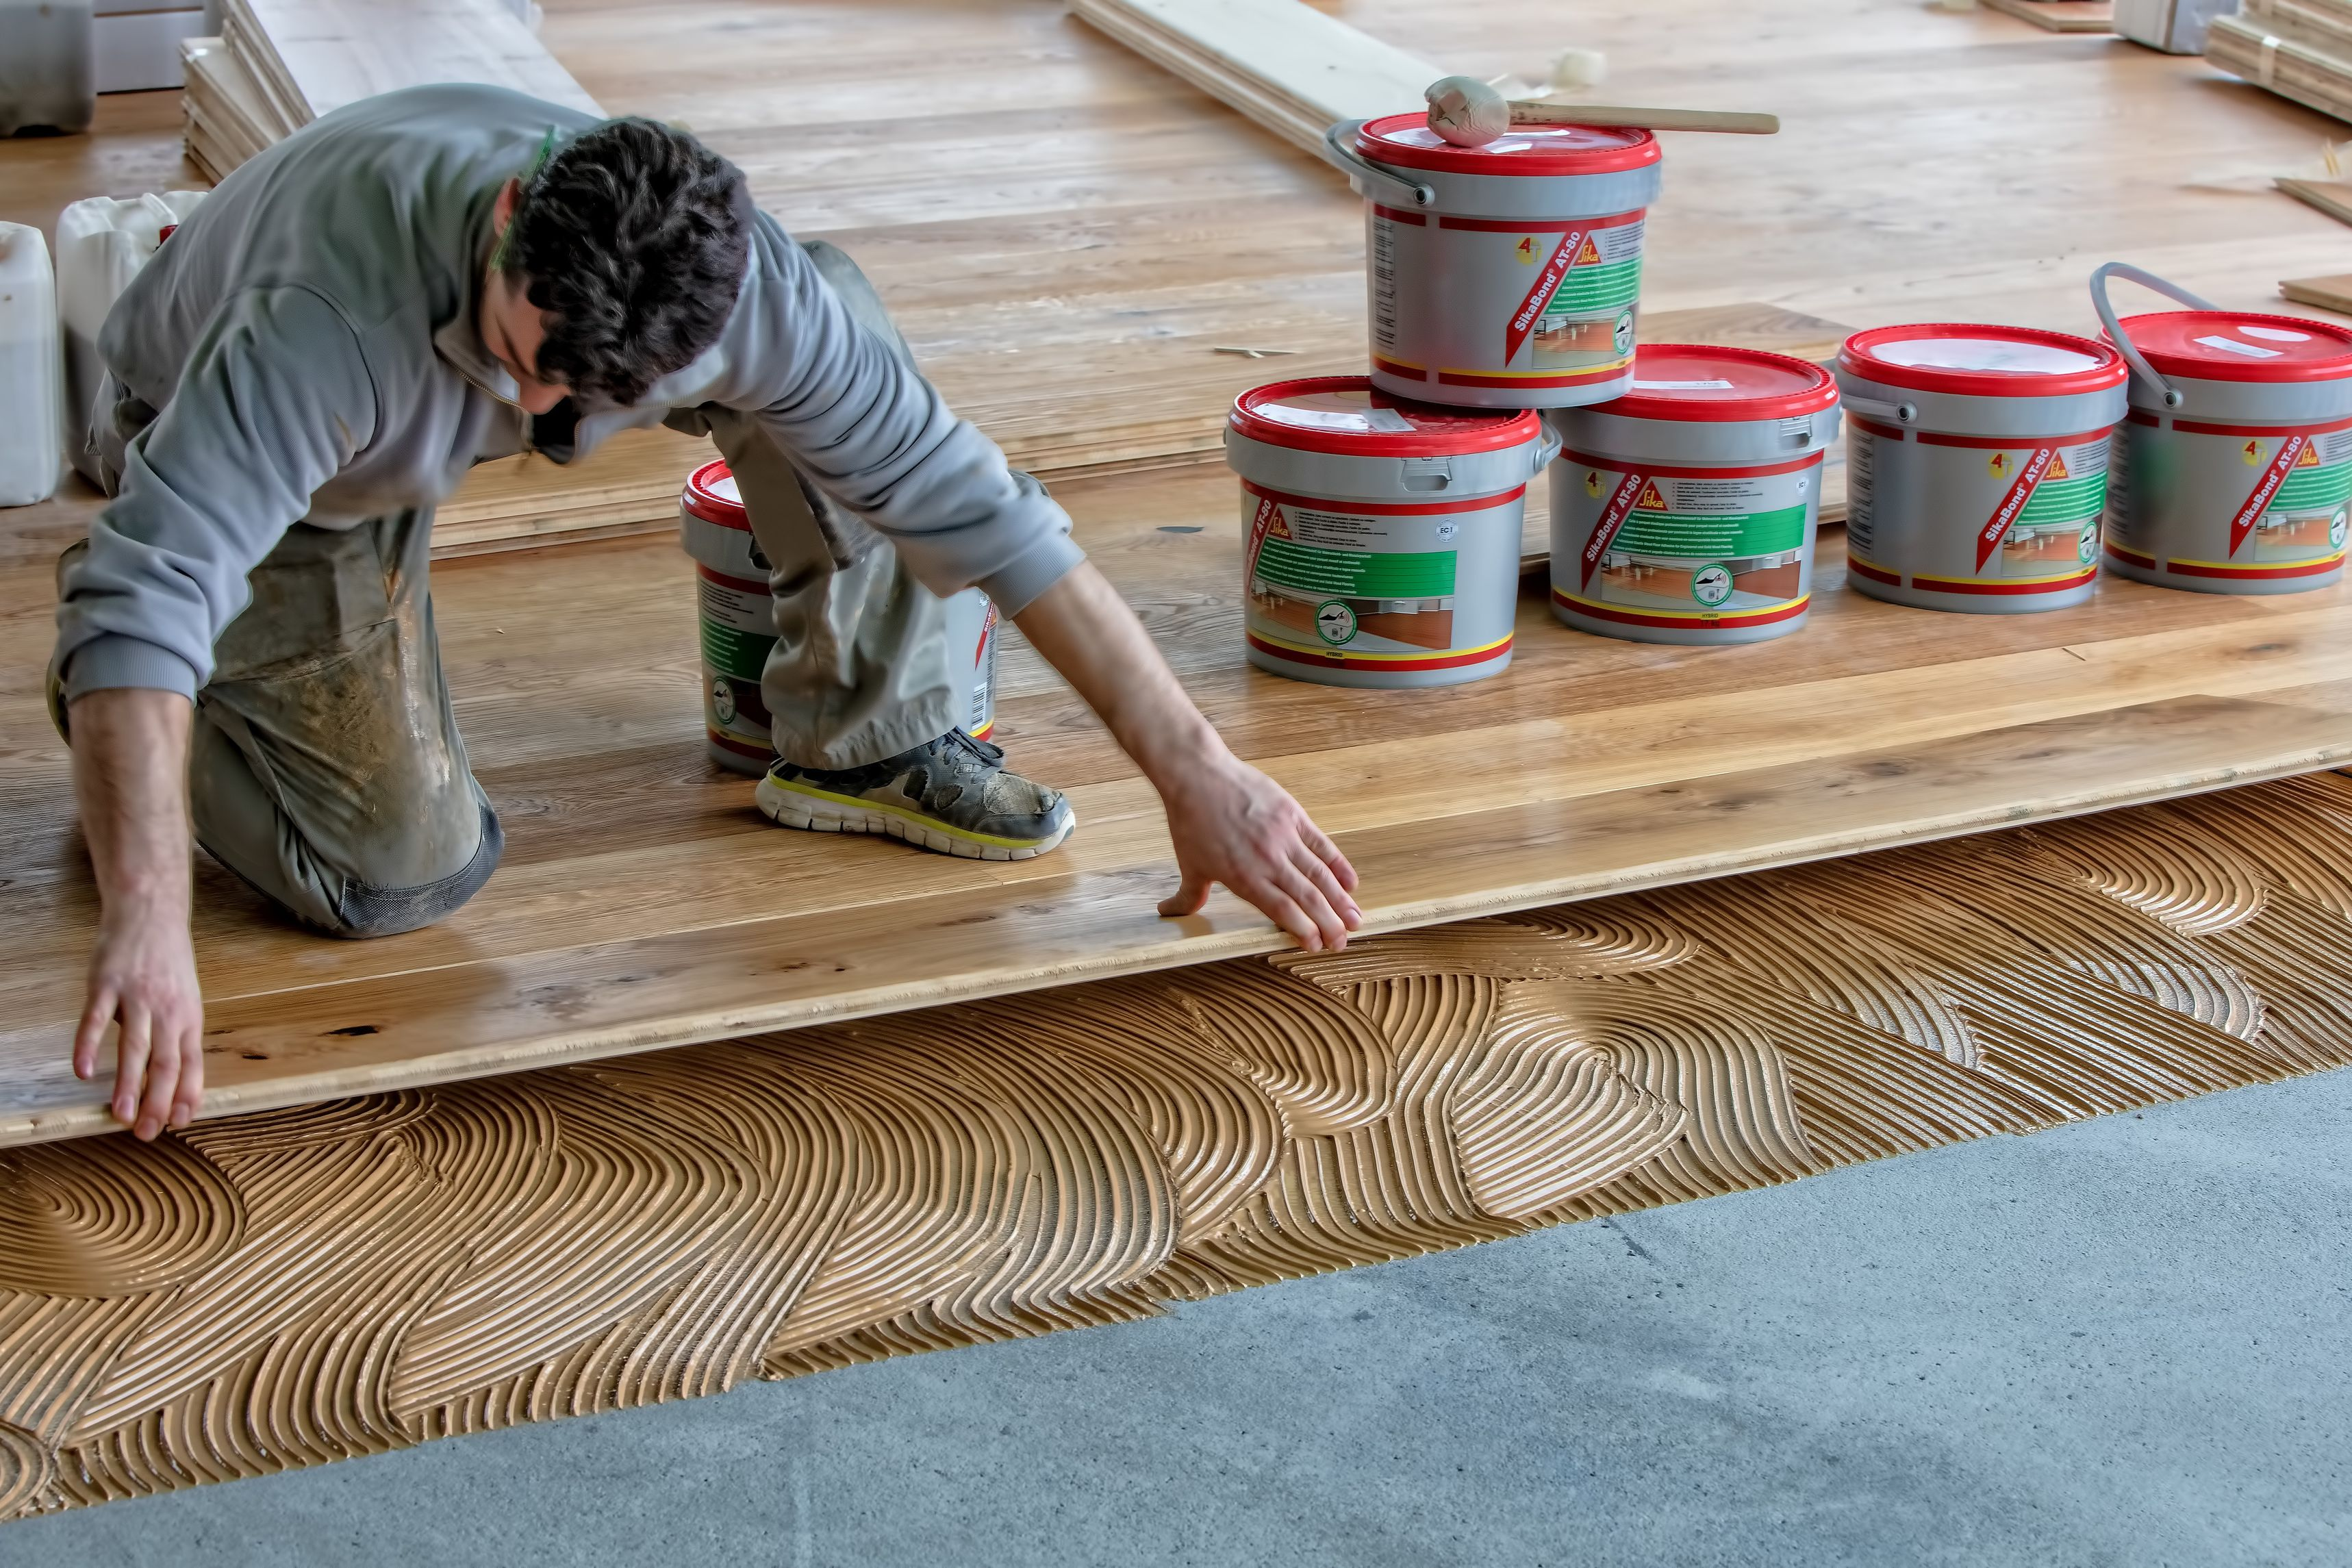 Wood floor bonding with SikaBond adhesive